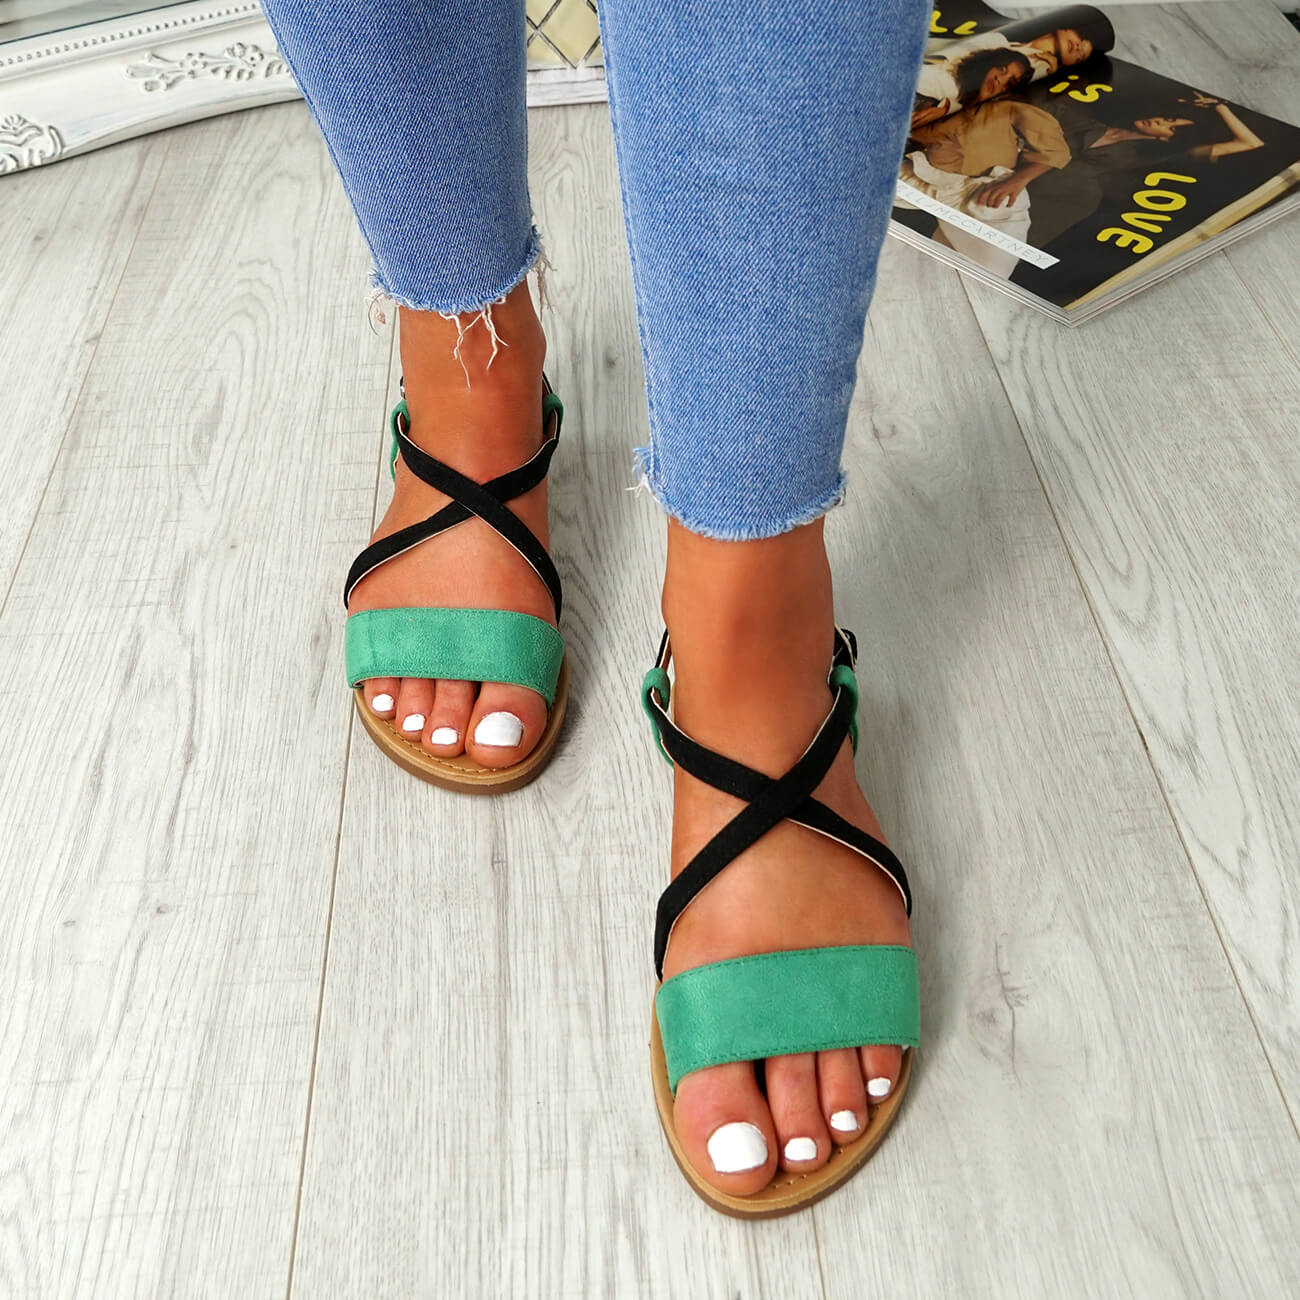 WOMENS-LADIES-ANKLE-STRAP-PEEP-TOE-FLAT-SANDALS-COMFY-SUMMER-SHOES-SIZE thumbnail 12